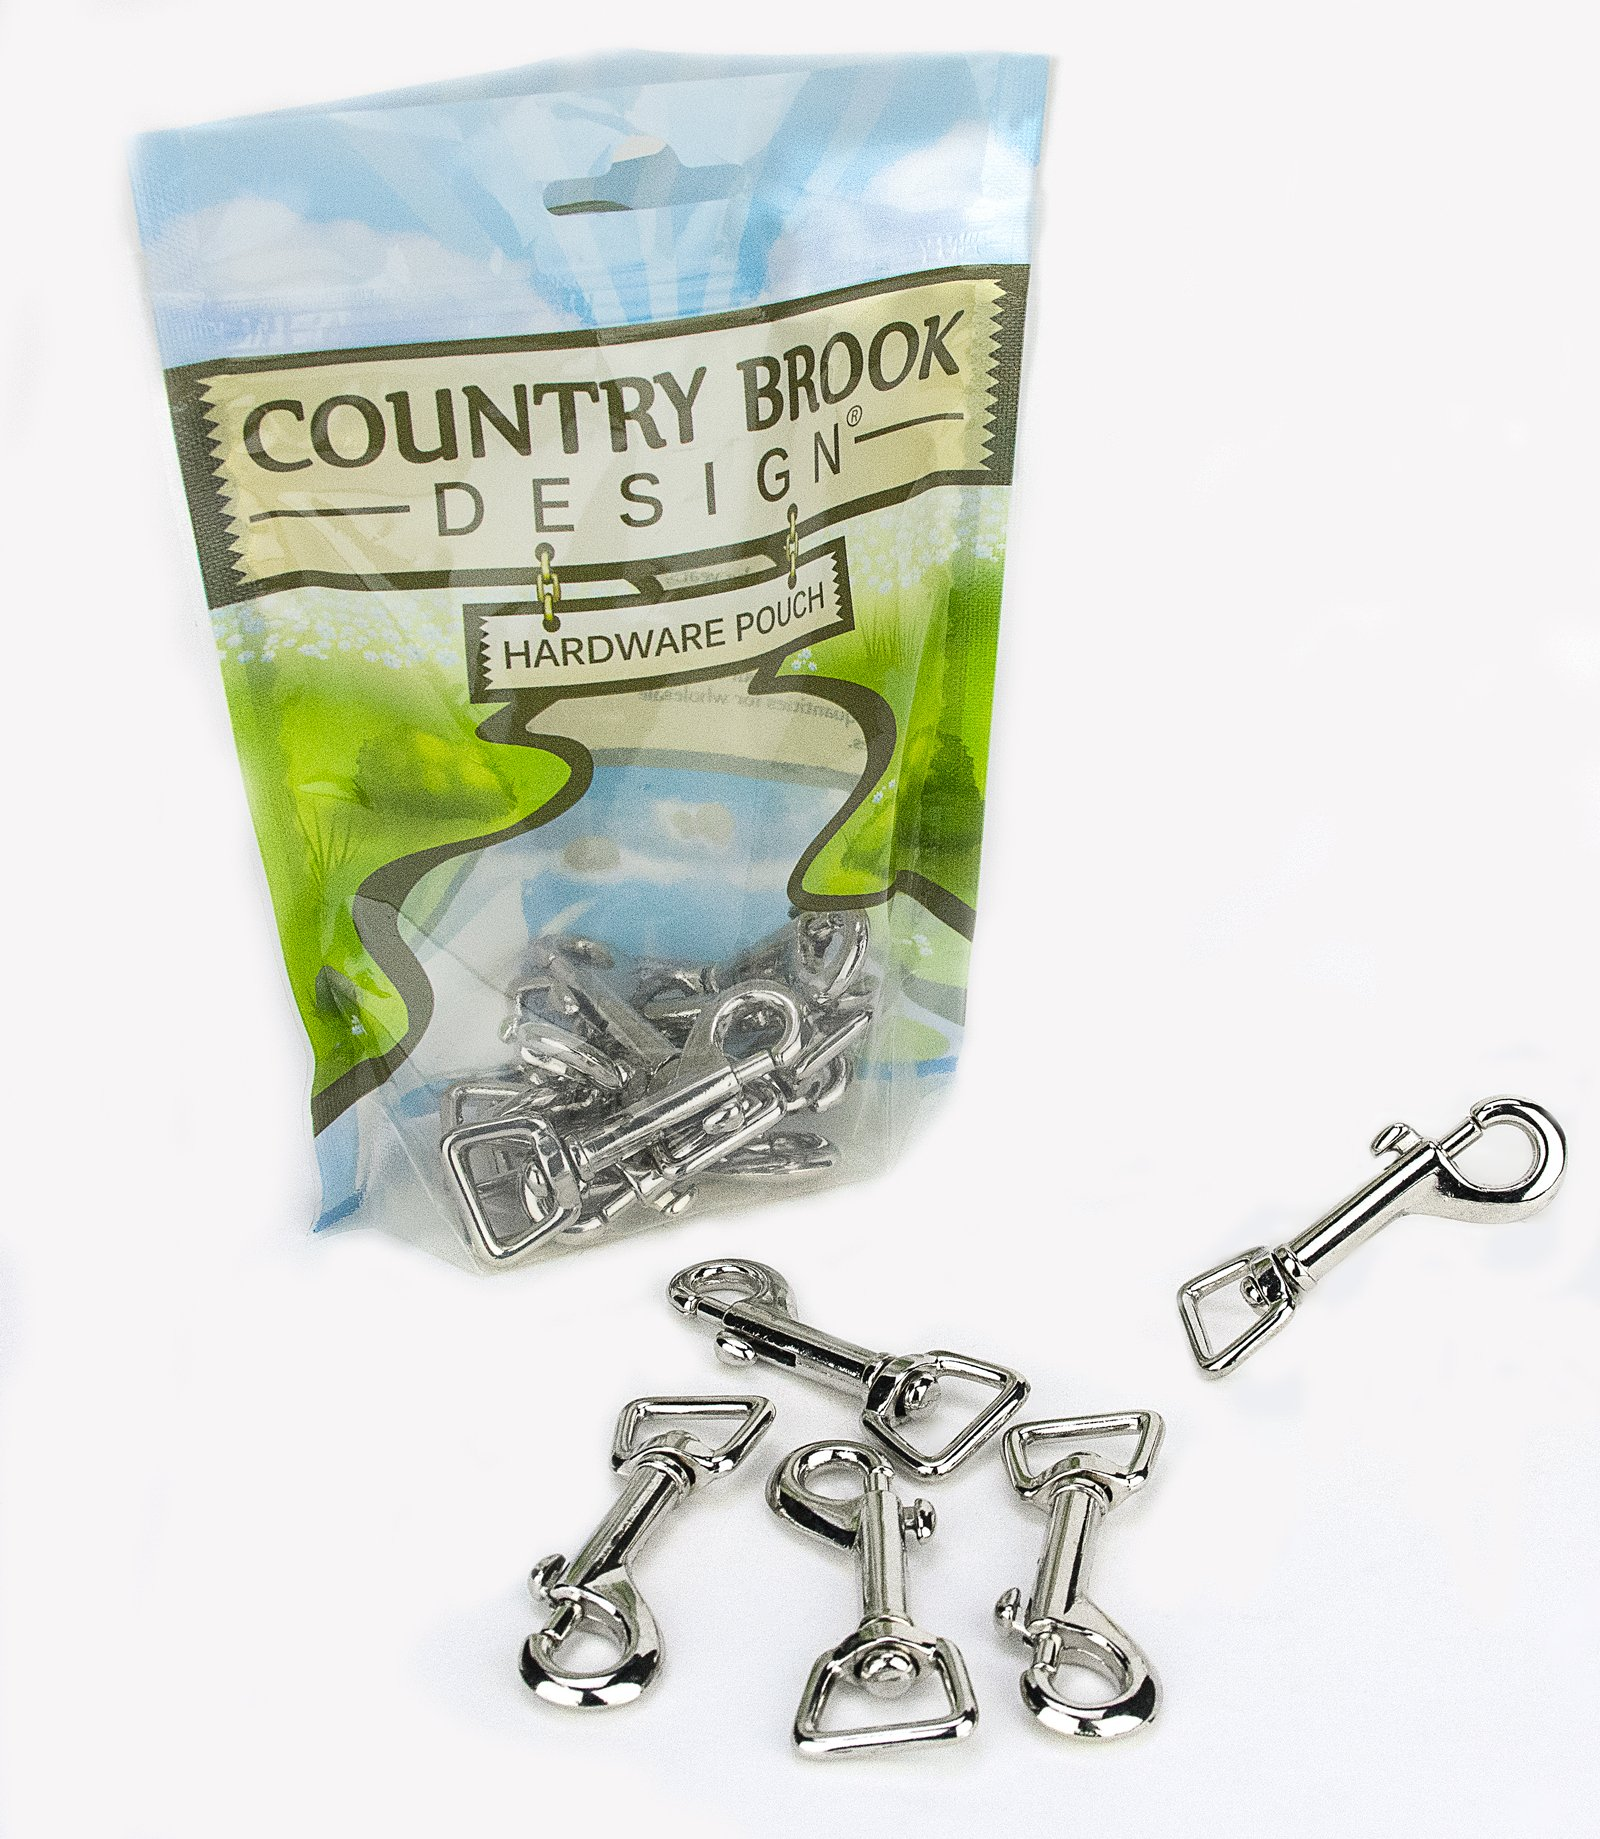 50 - Country Brook Design | 5/8 Inch Swivel Snap Hooks by Country Brook Design